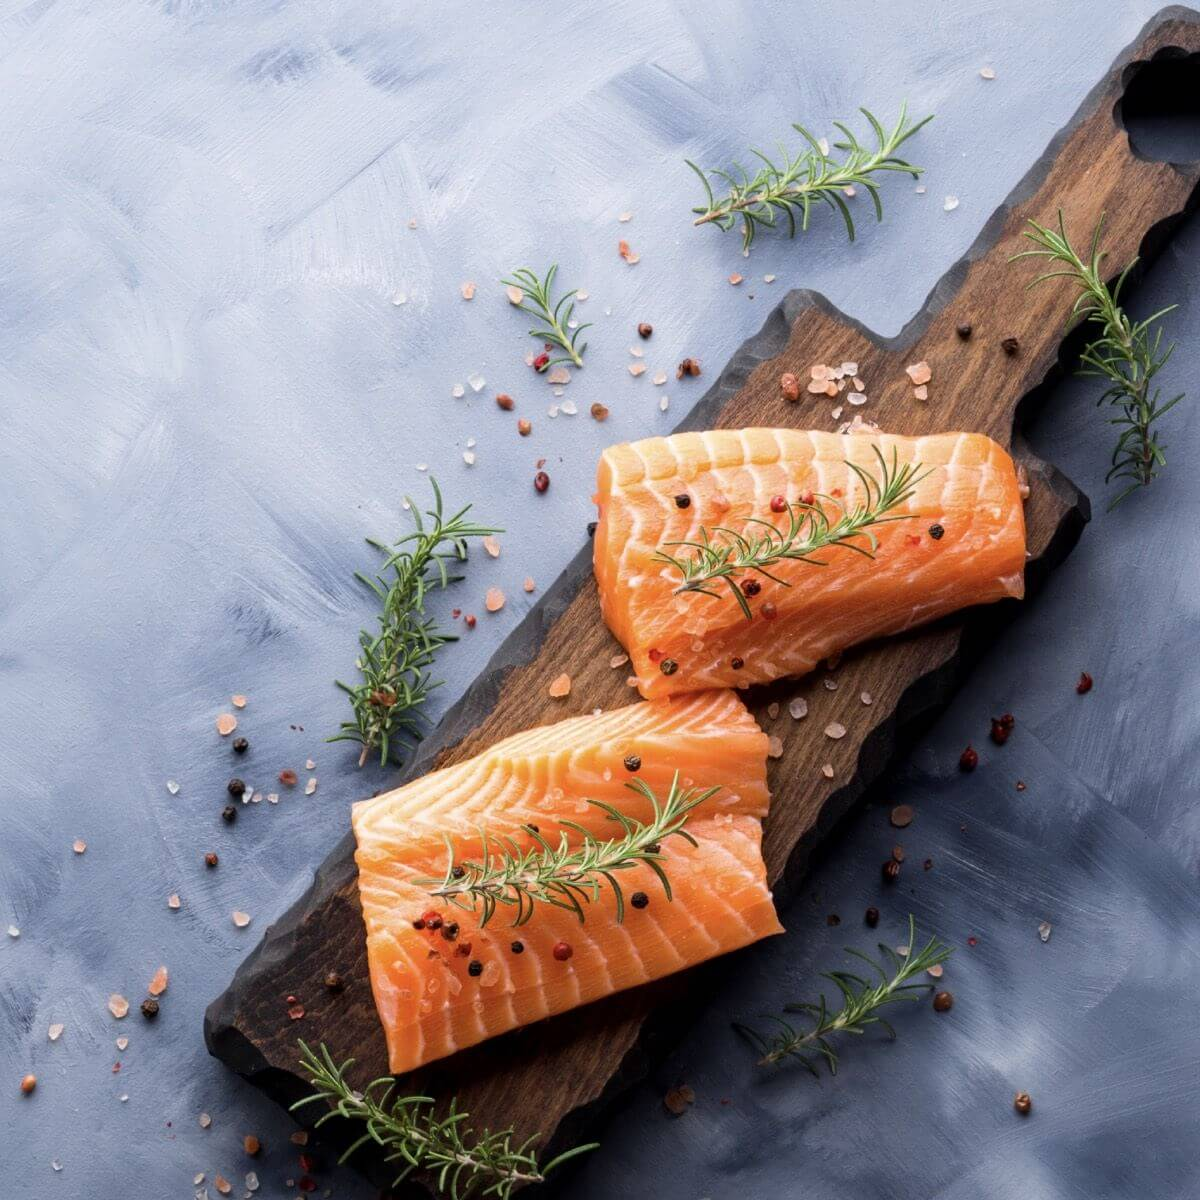 Omega-3s are found in cold water fish like salmon